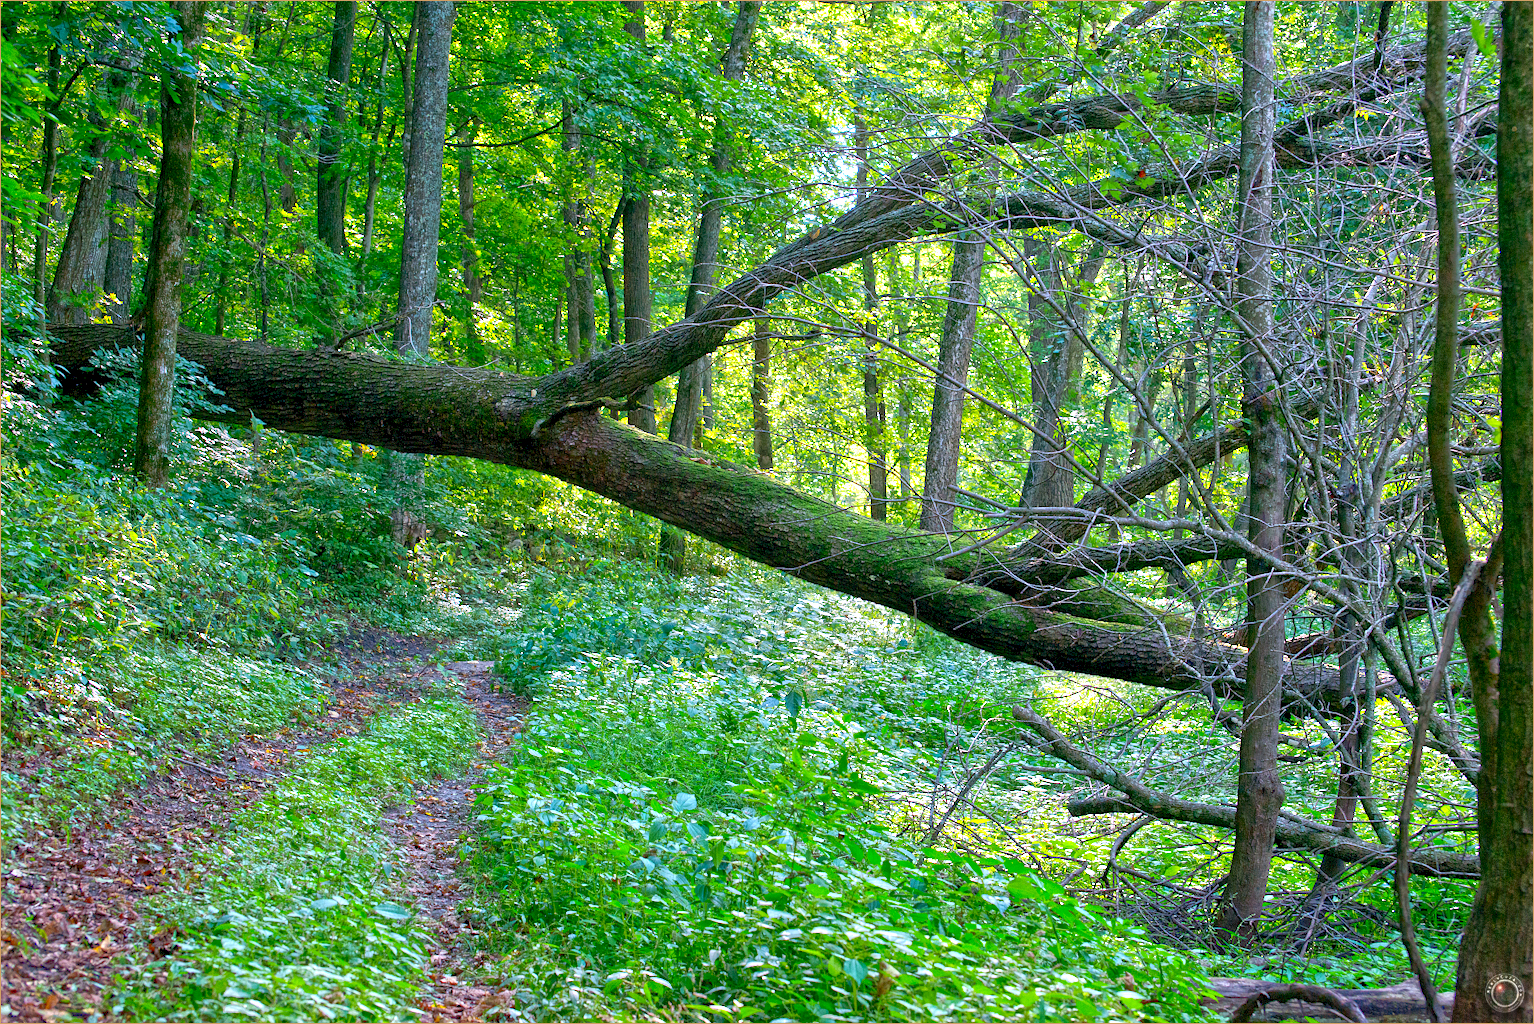 16 Wyalusing State Park Wisconsin Tree Fell DCS_8871 as Smart Object-2